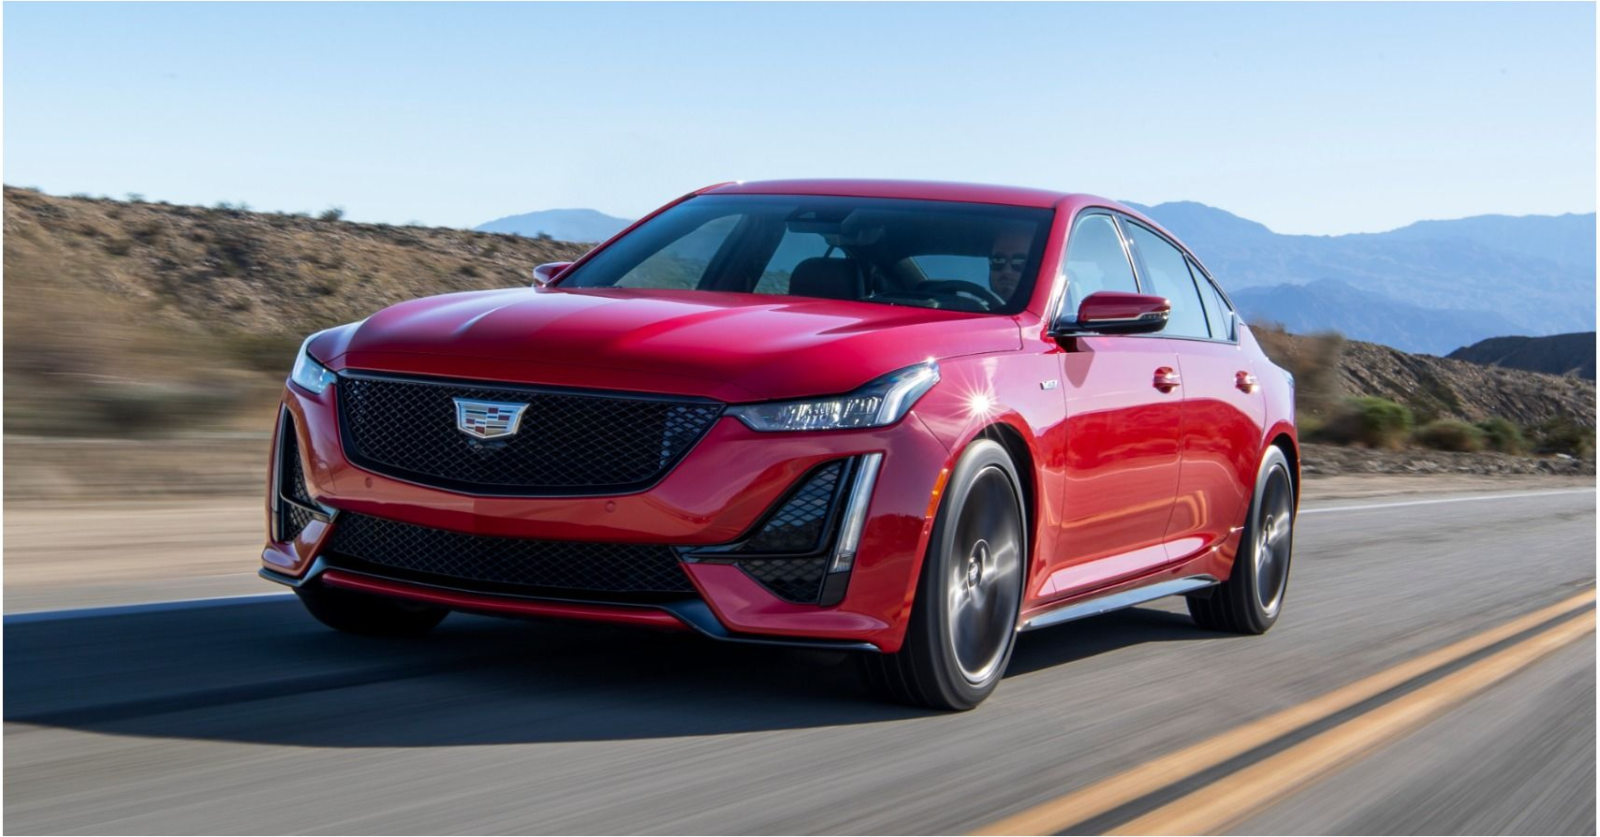 Cadillac CT5-V Blackwing - The Most Track Ready Caddy on the Market